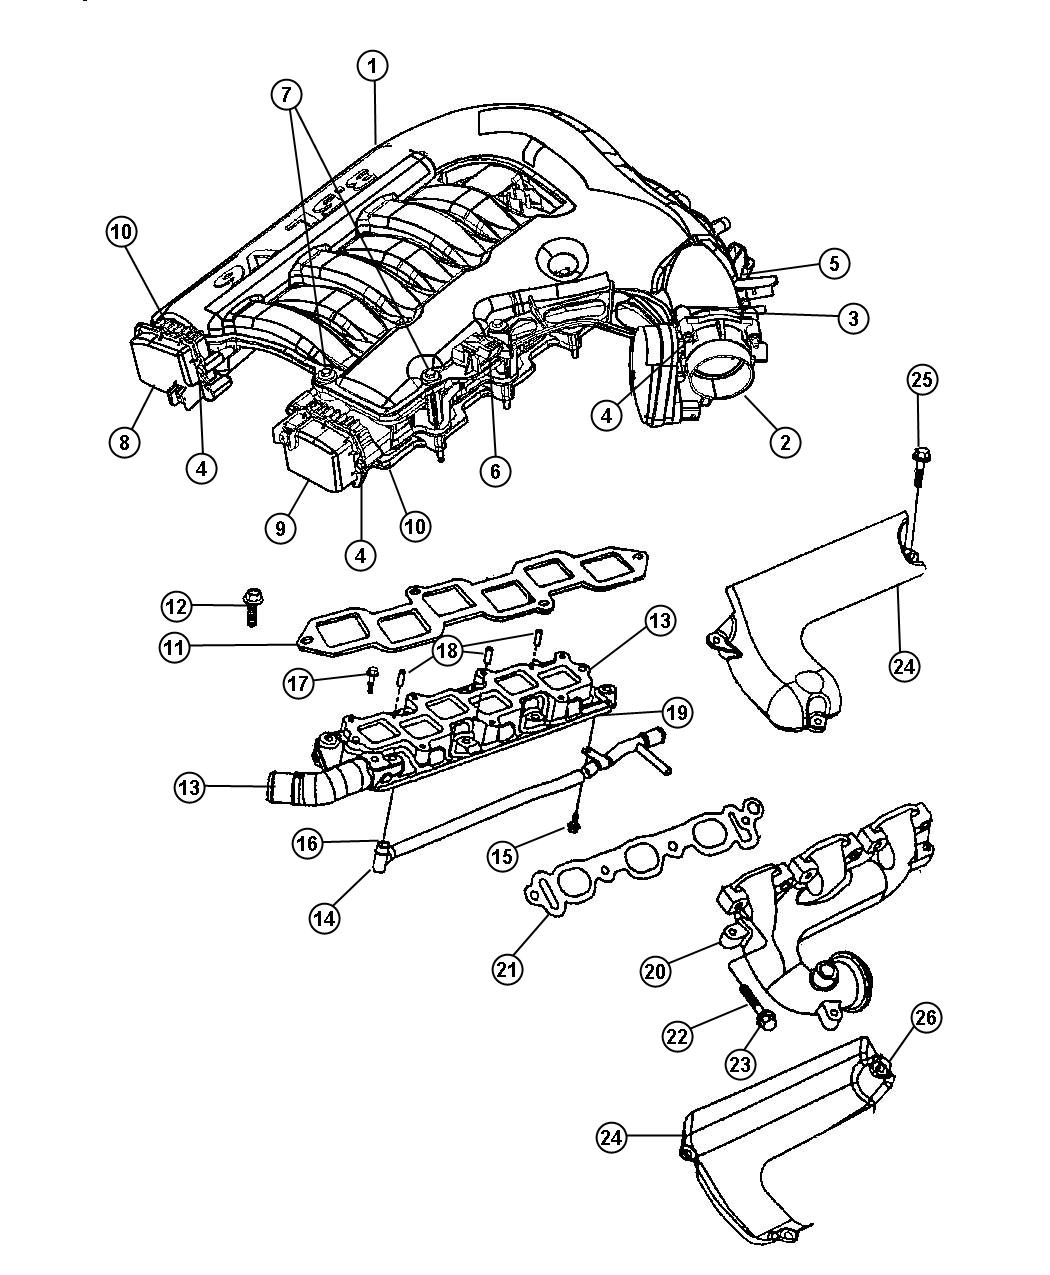 Dodge Charger Exhaust Diagram 2 7